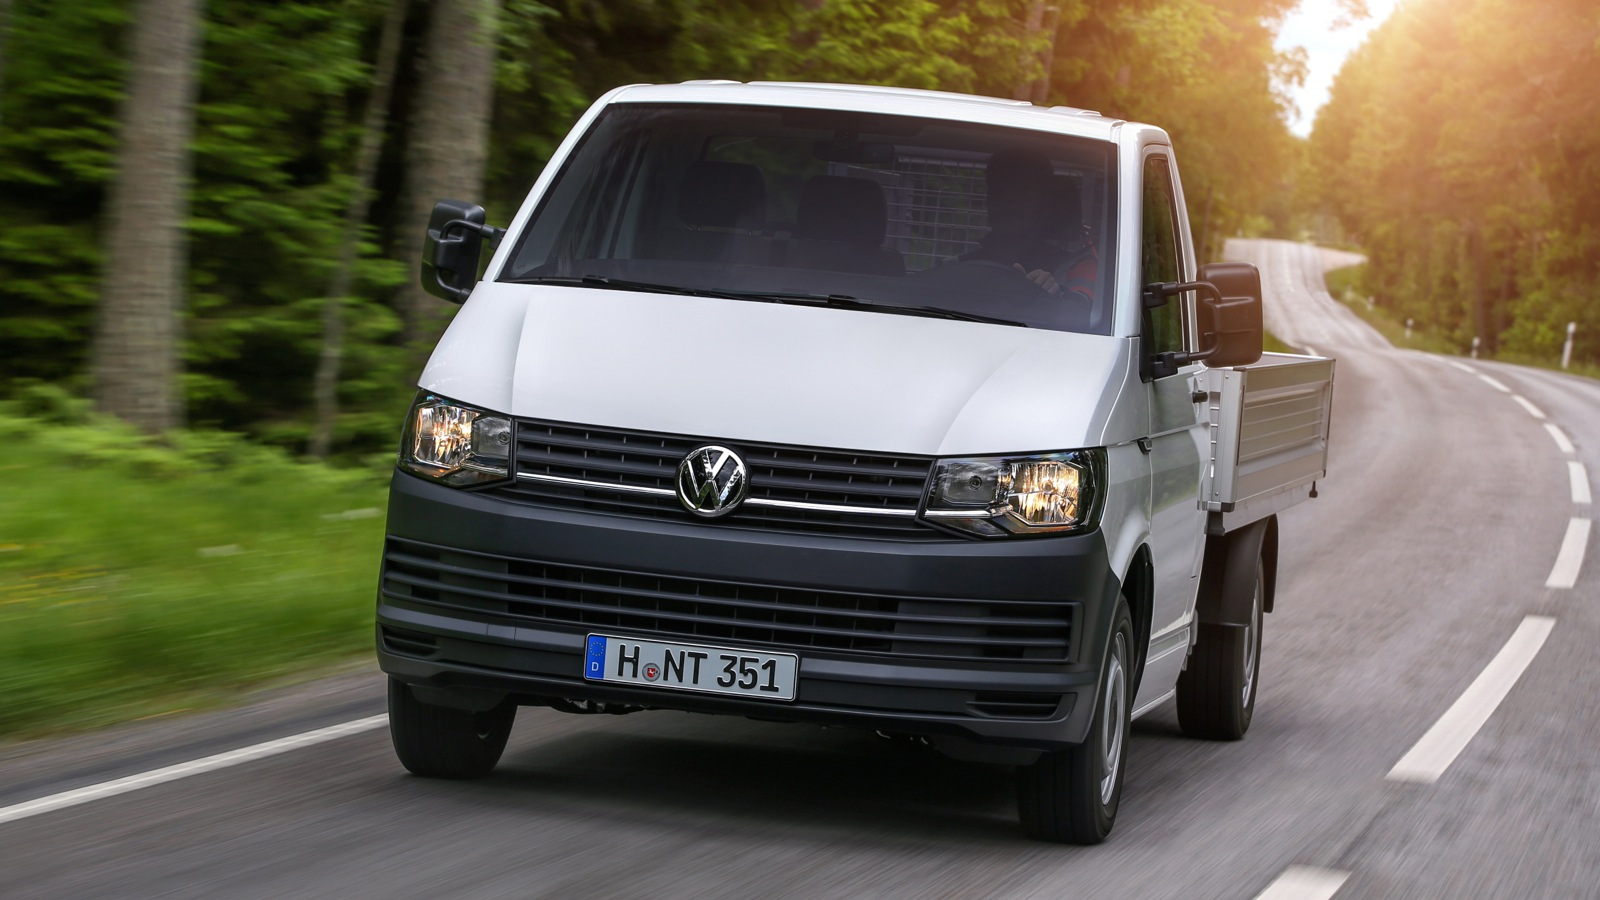 volkswagen transporter t6 review photos caradvice. Black Bedroom Furniture Sets. Home Design Ideas